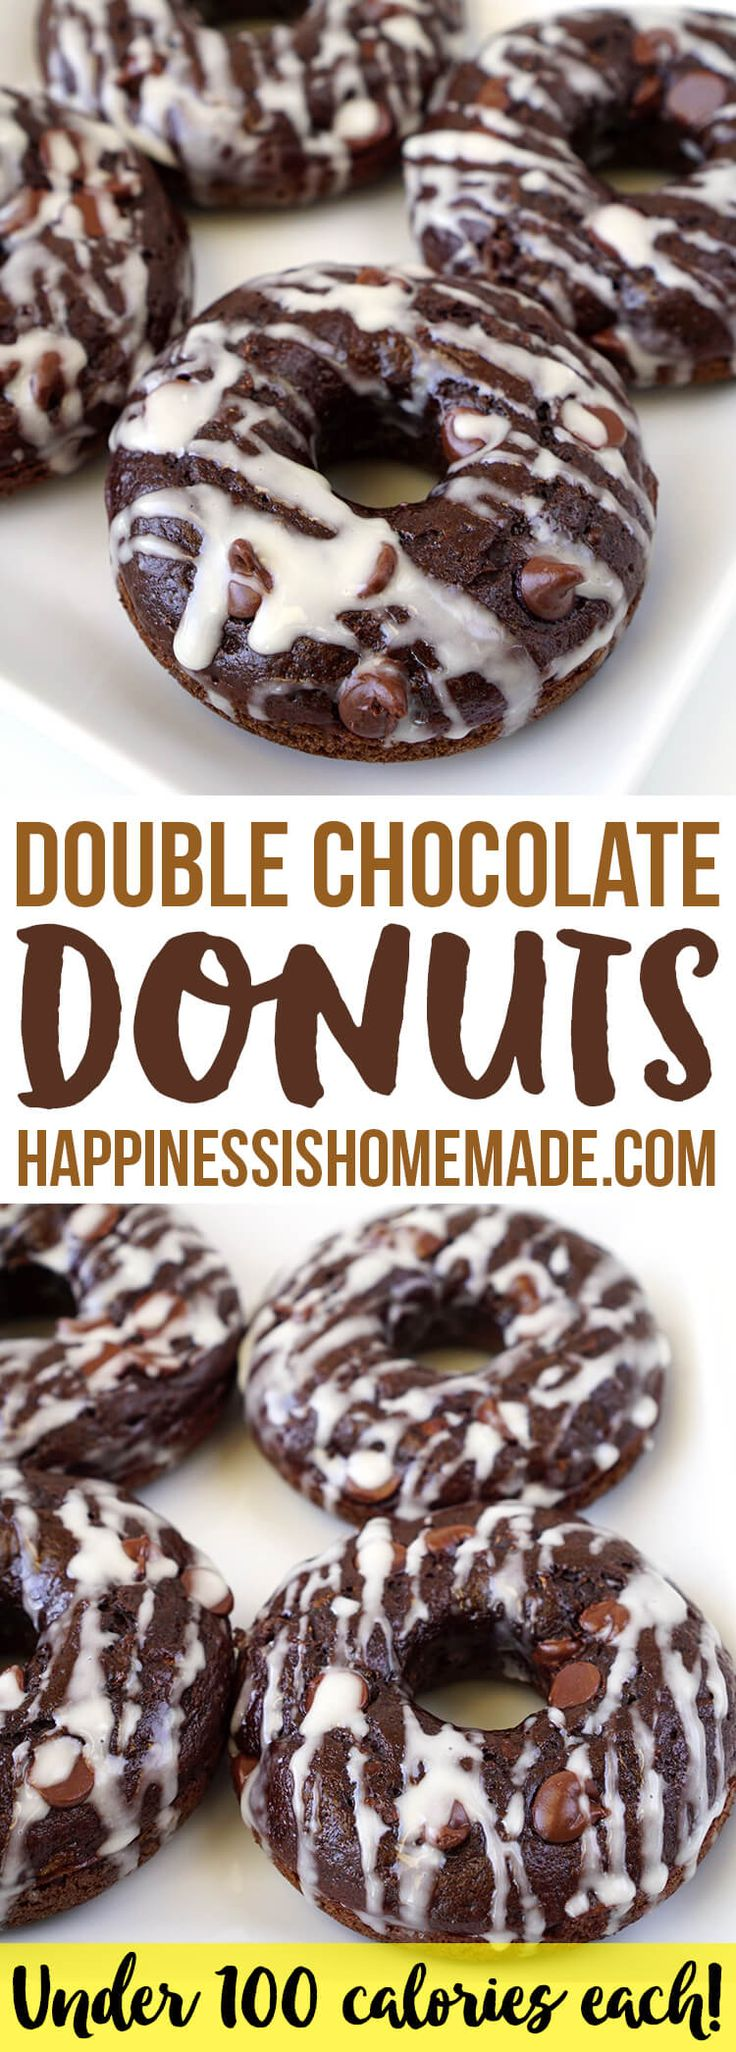 Healthy Double Chocolate Zucchini Donuts Under 100 Calories Each - These better-for-you double chocolate donuts are under 100 calories each! A moist and rich chocolaty indulgence that won't blow your diet!